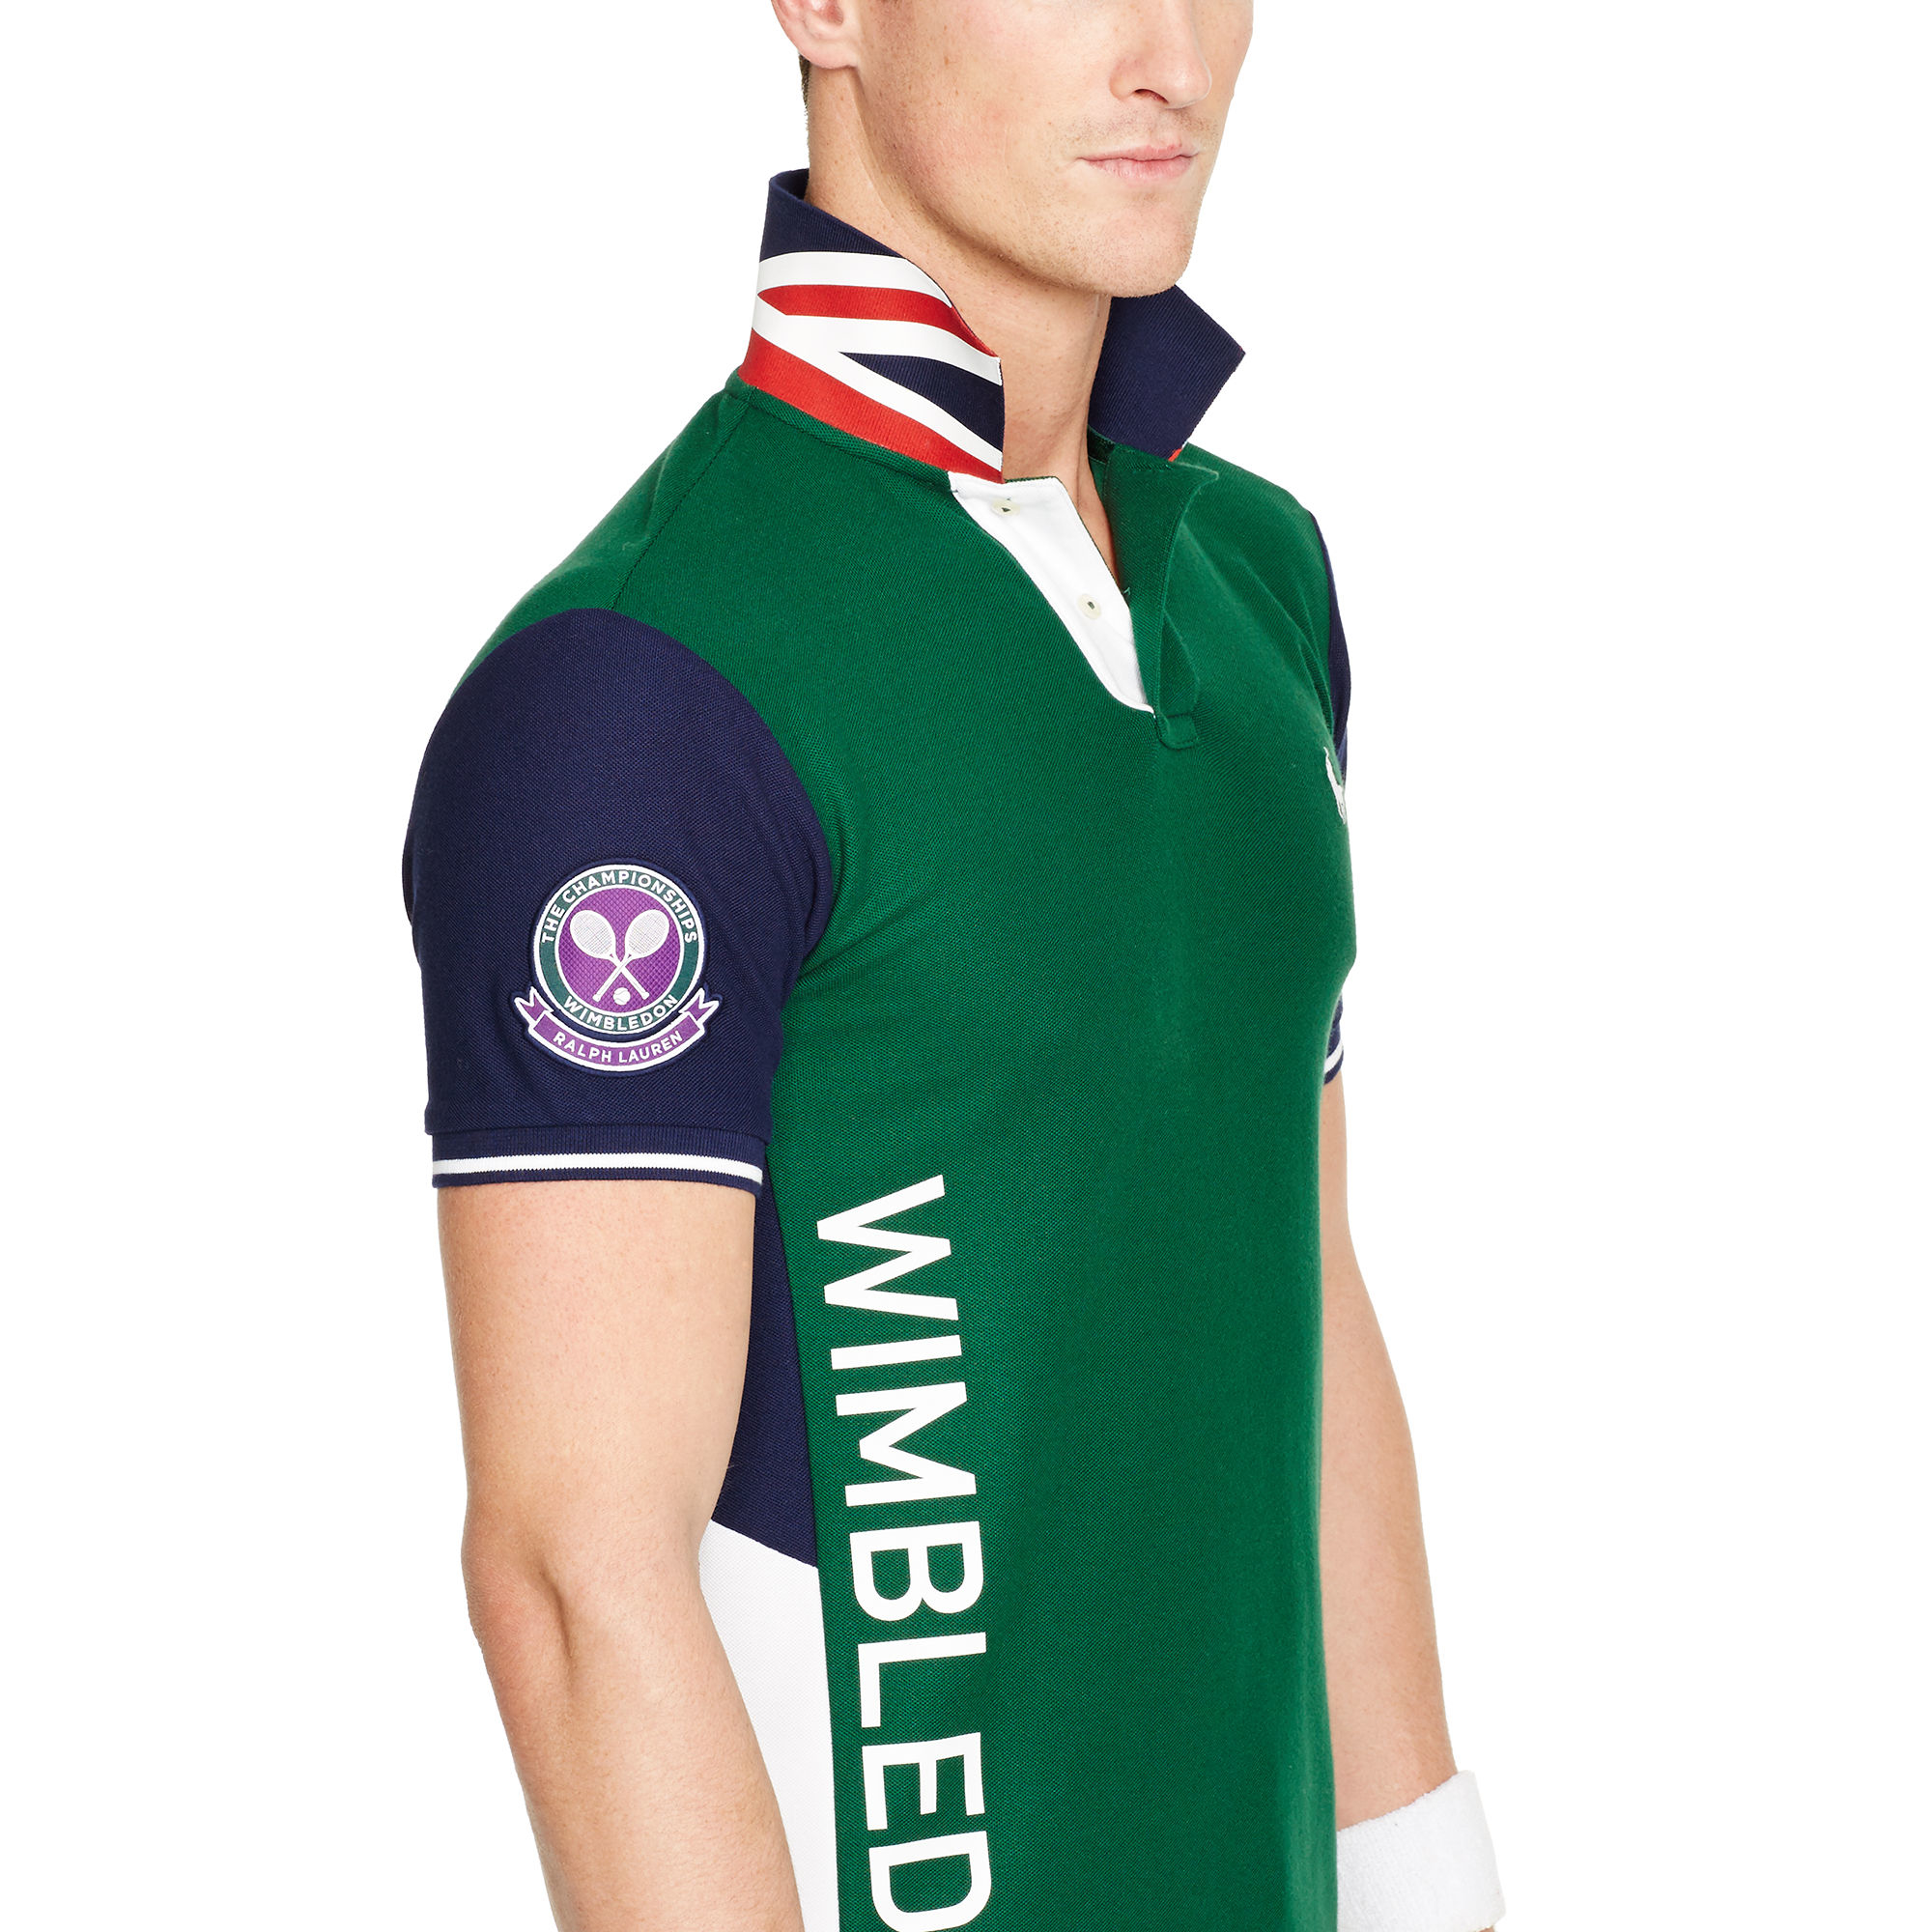 Ralph Lauren Wimbledon Piqu Polo Shirt In Green For Men Lyst